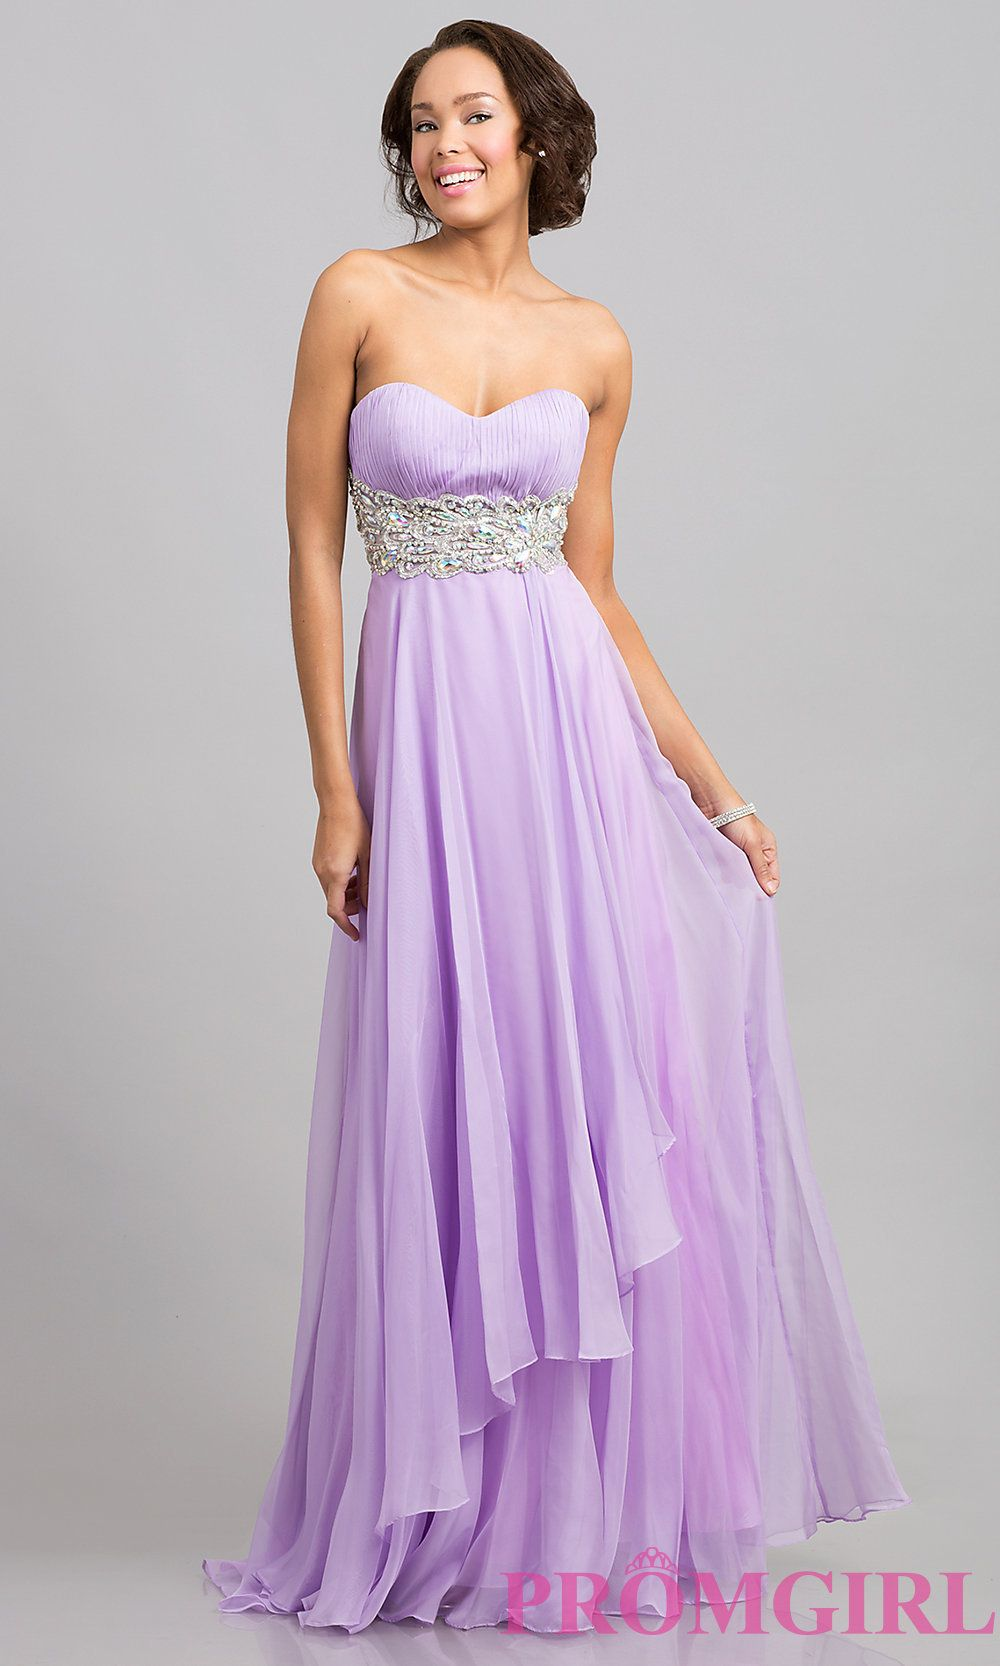 Long prom dress style al front image prom dresses